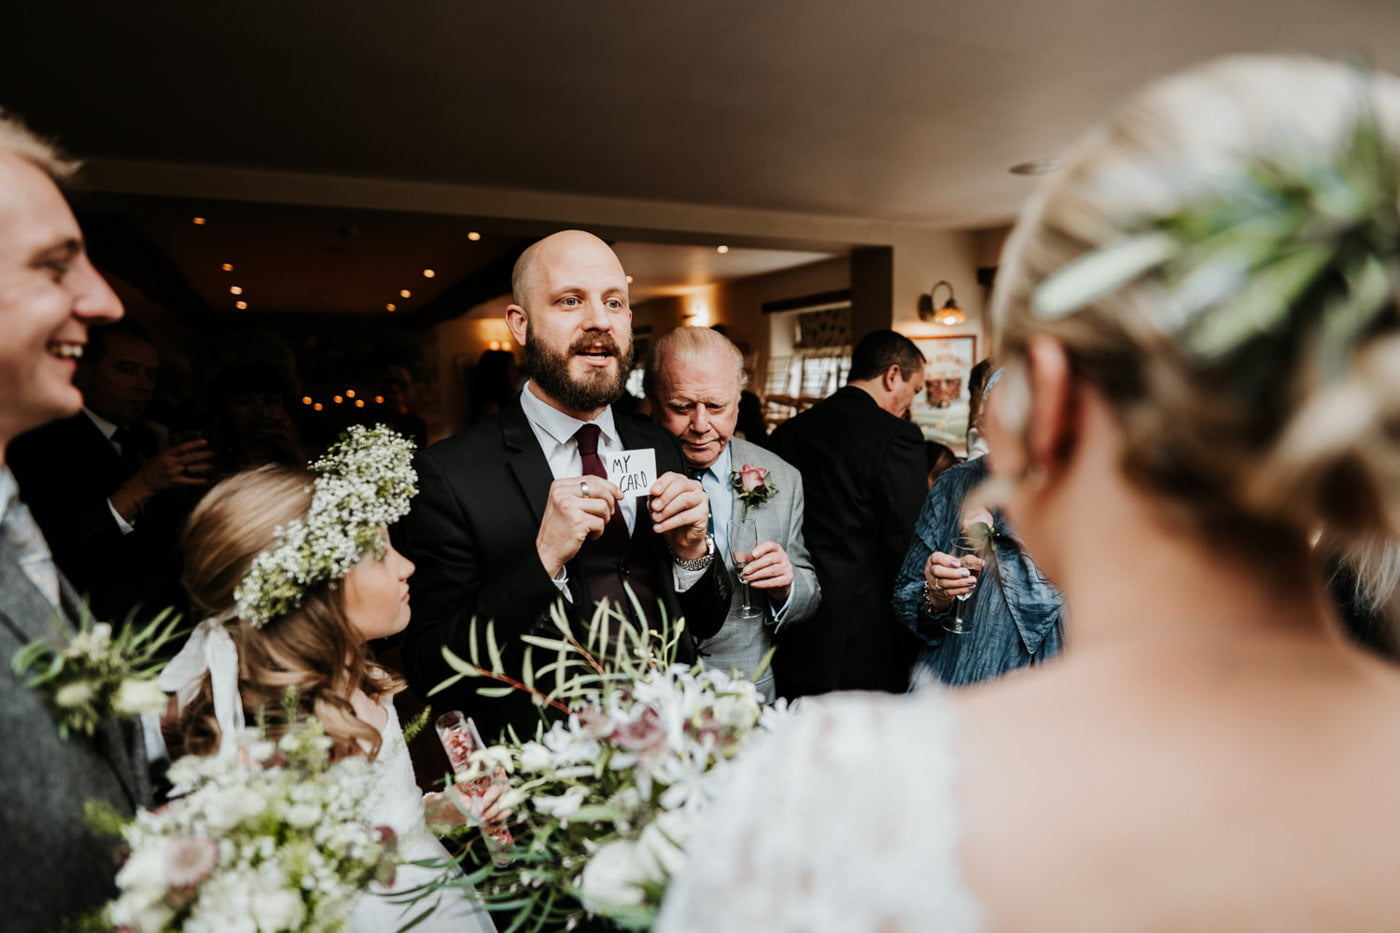 Emily and Rich, Moonraker Hotel, Wiltshire 5